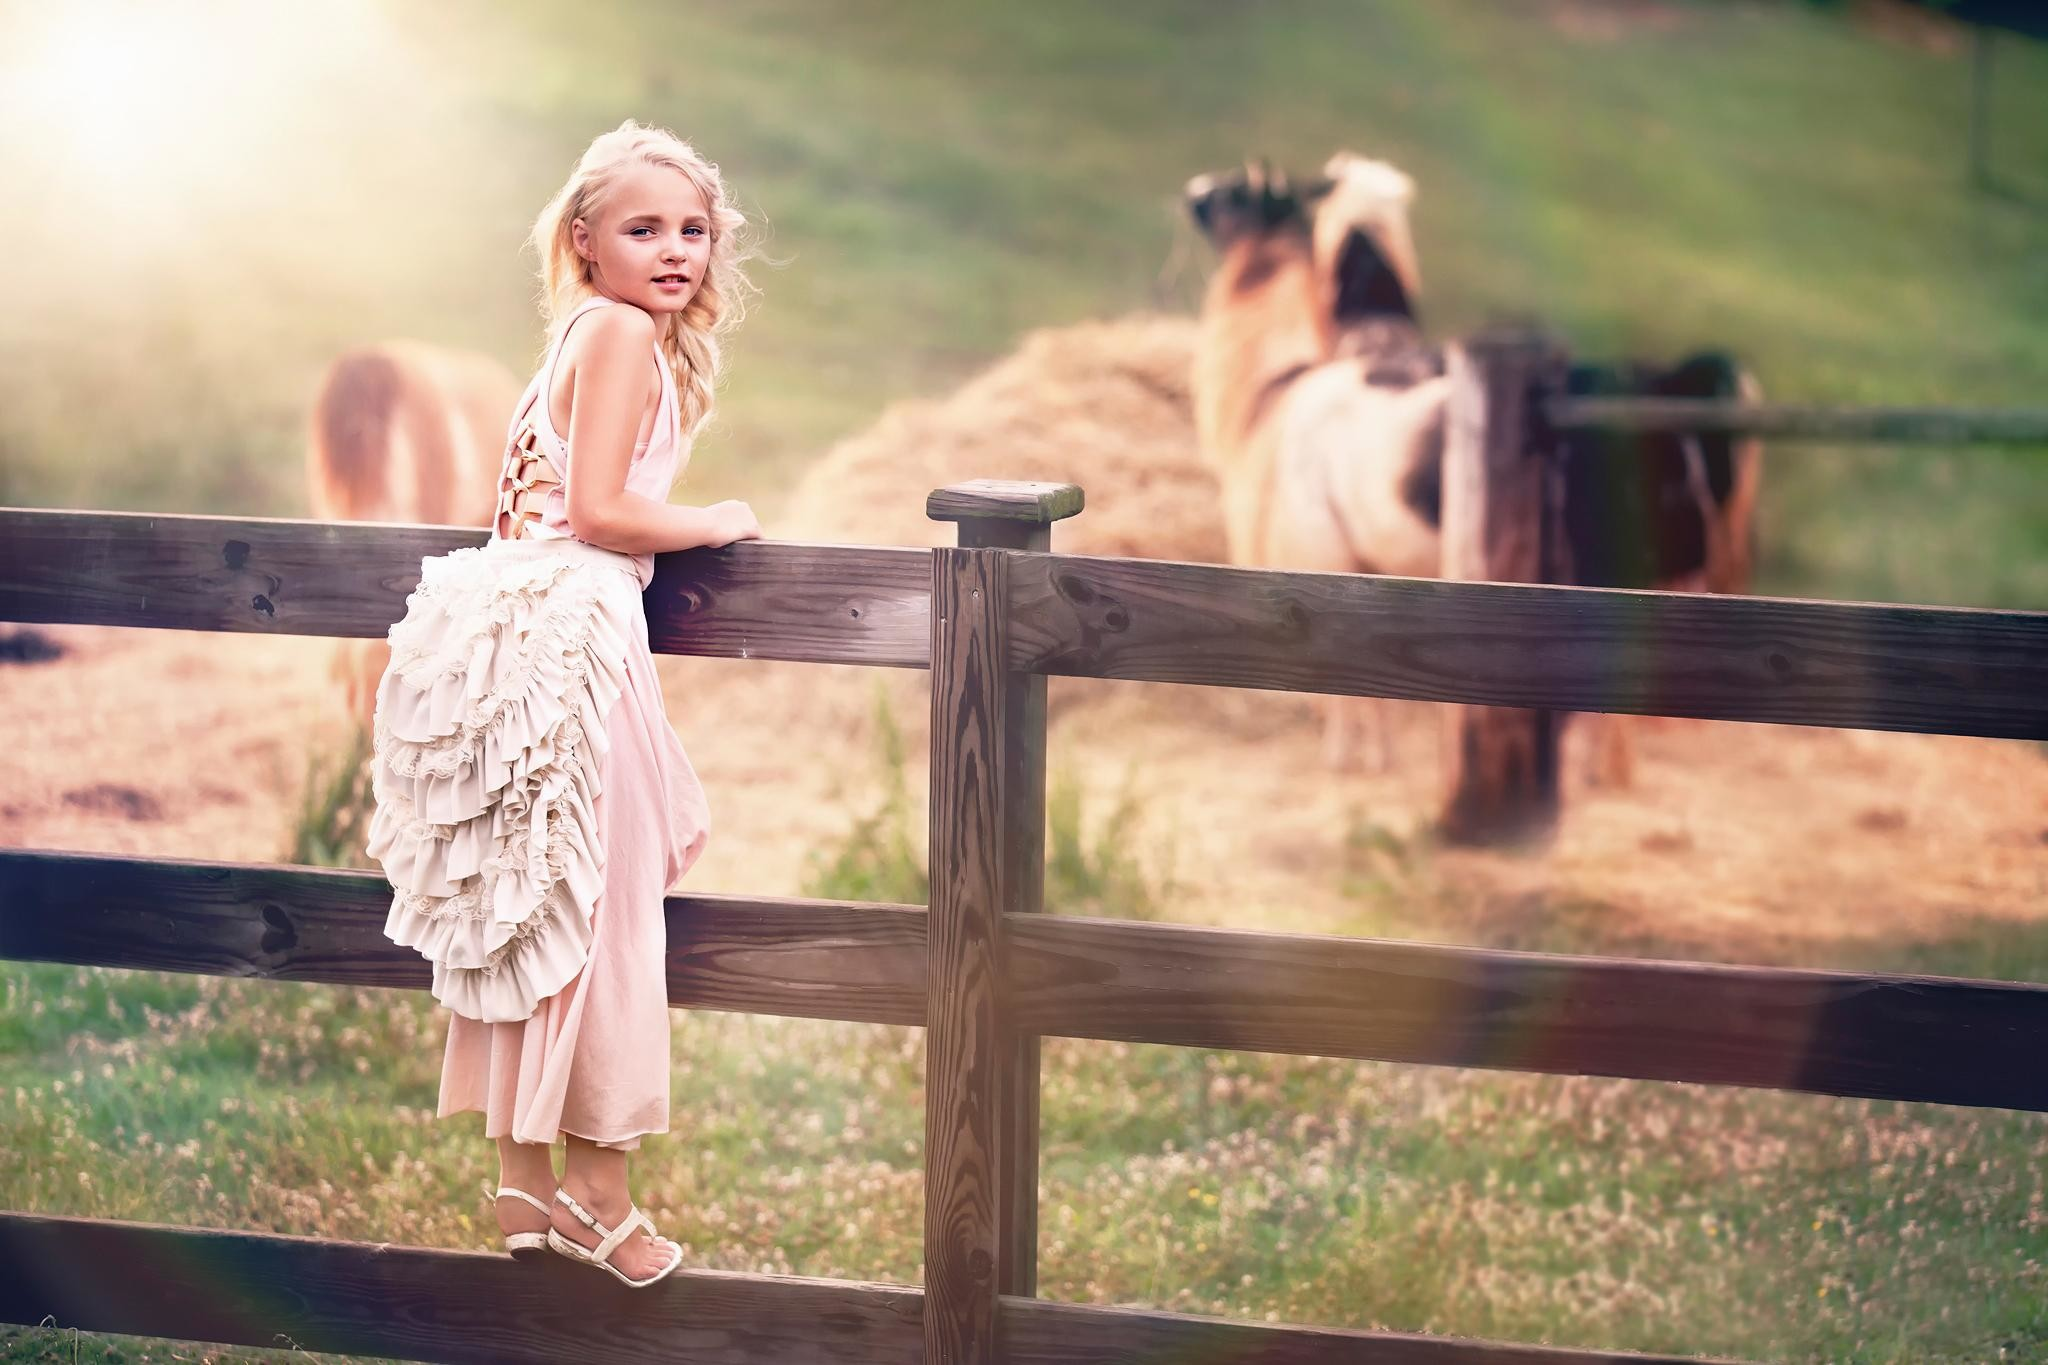 wallpaper.wiki-Photography-baby-girl-fence-country-farm-